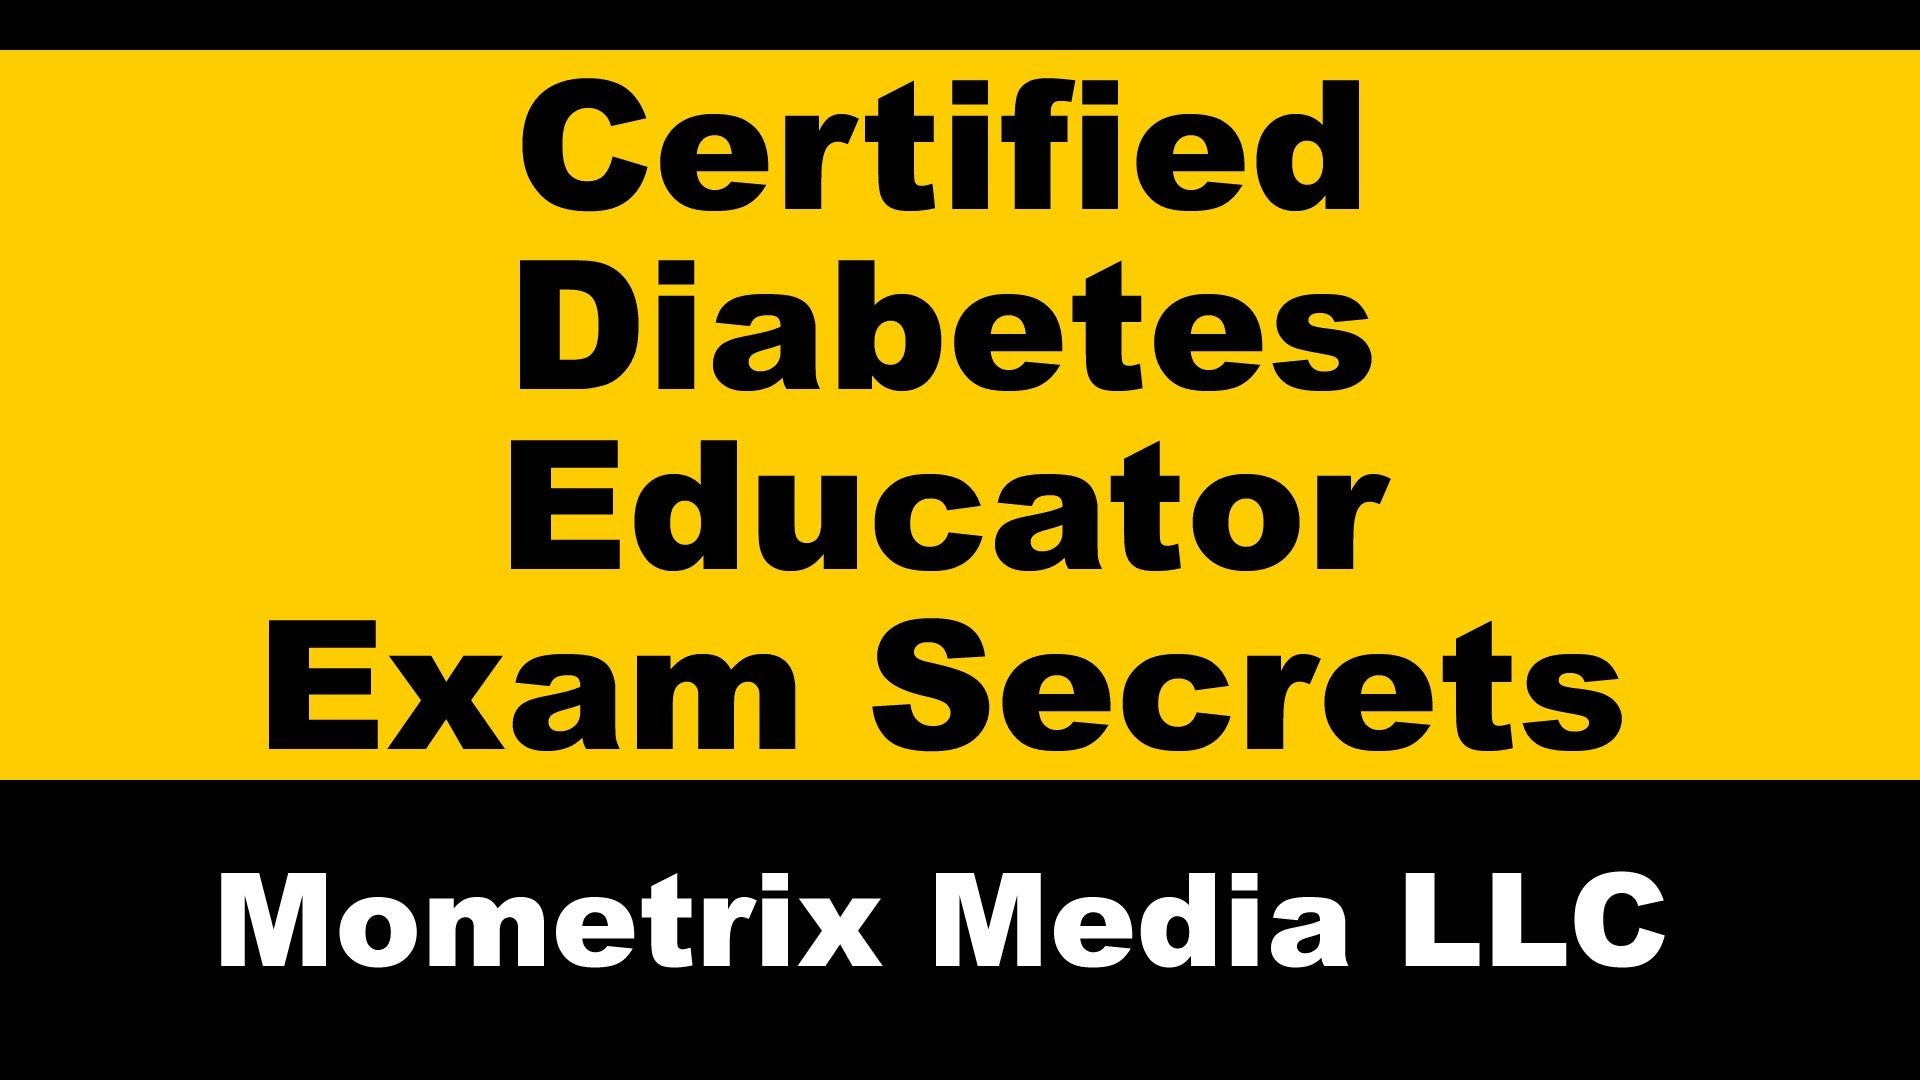 Cde Practice Blood Glucose Pattern Management Certified Diabetes